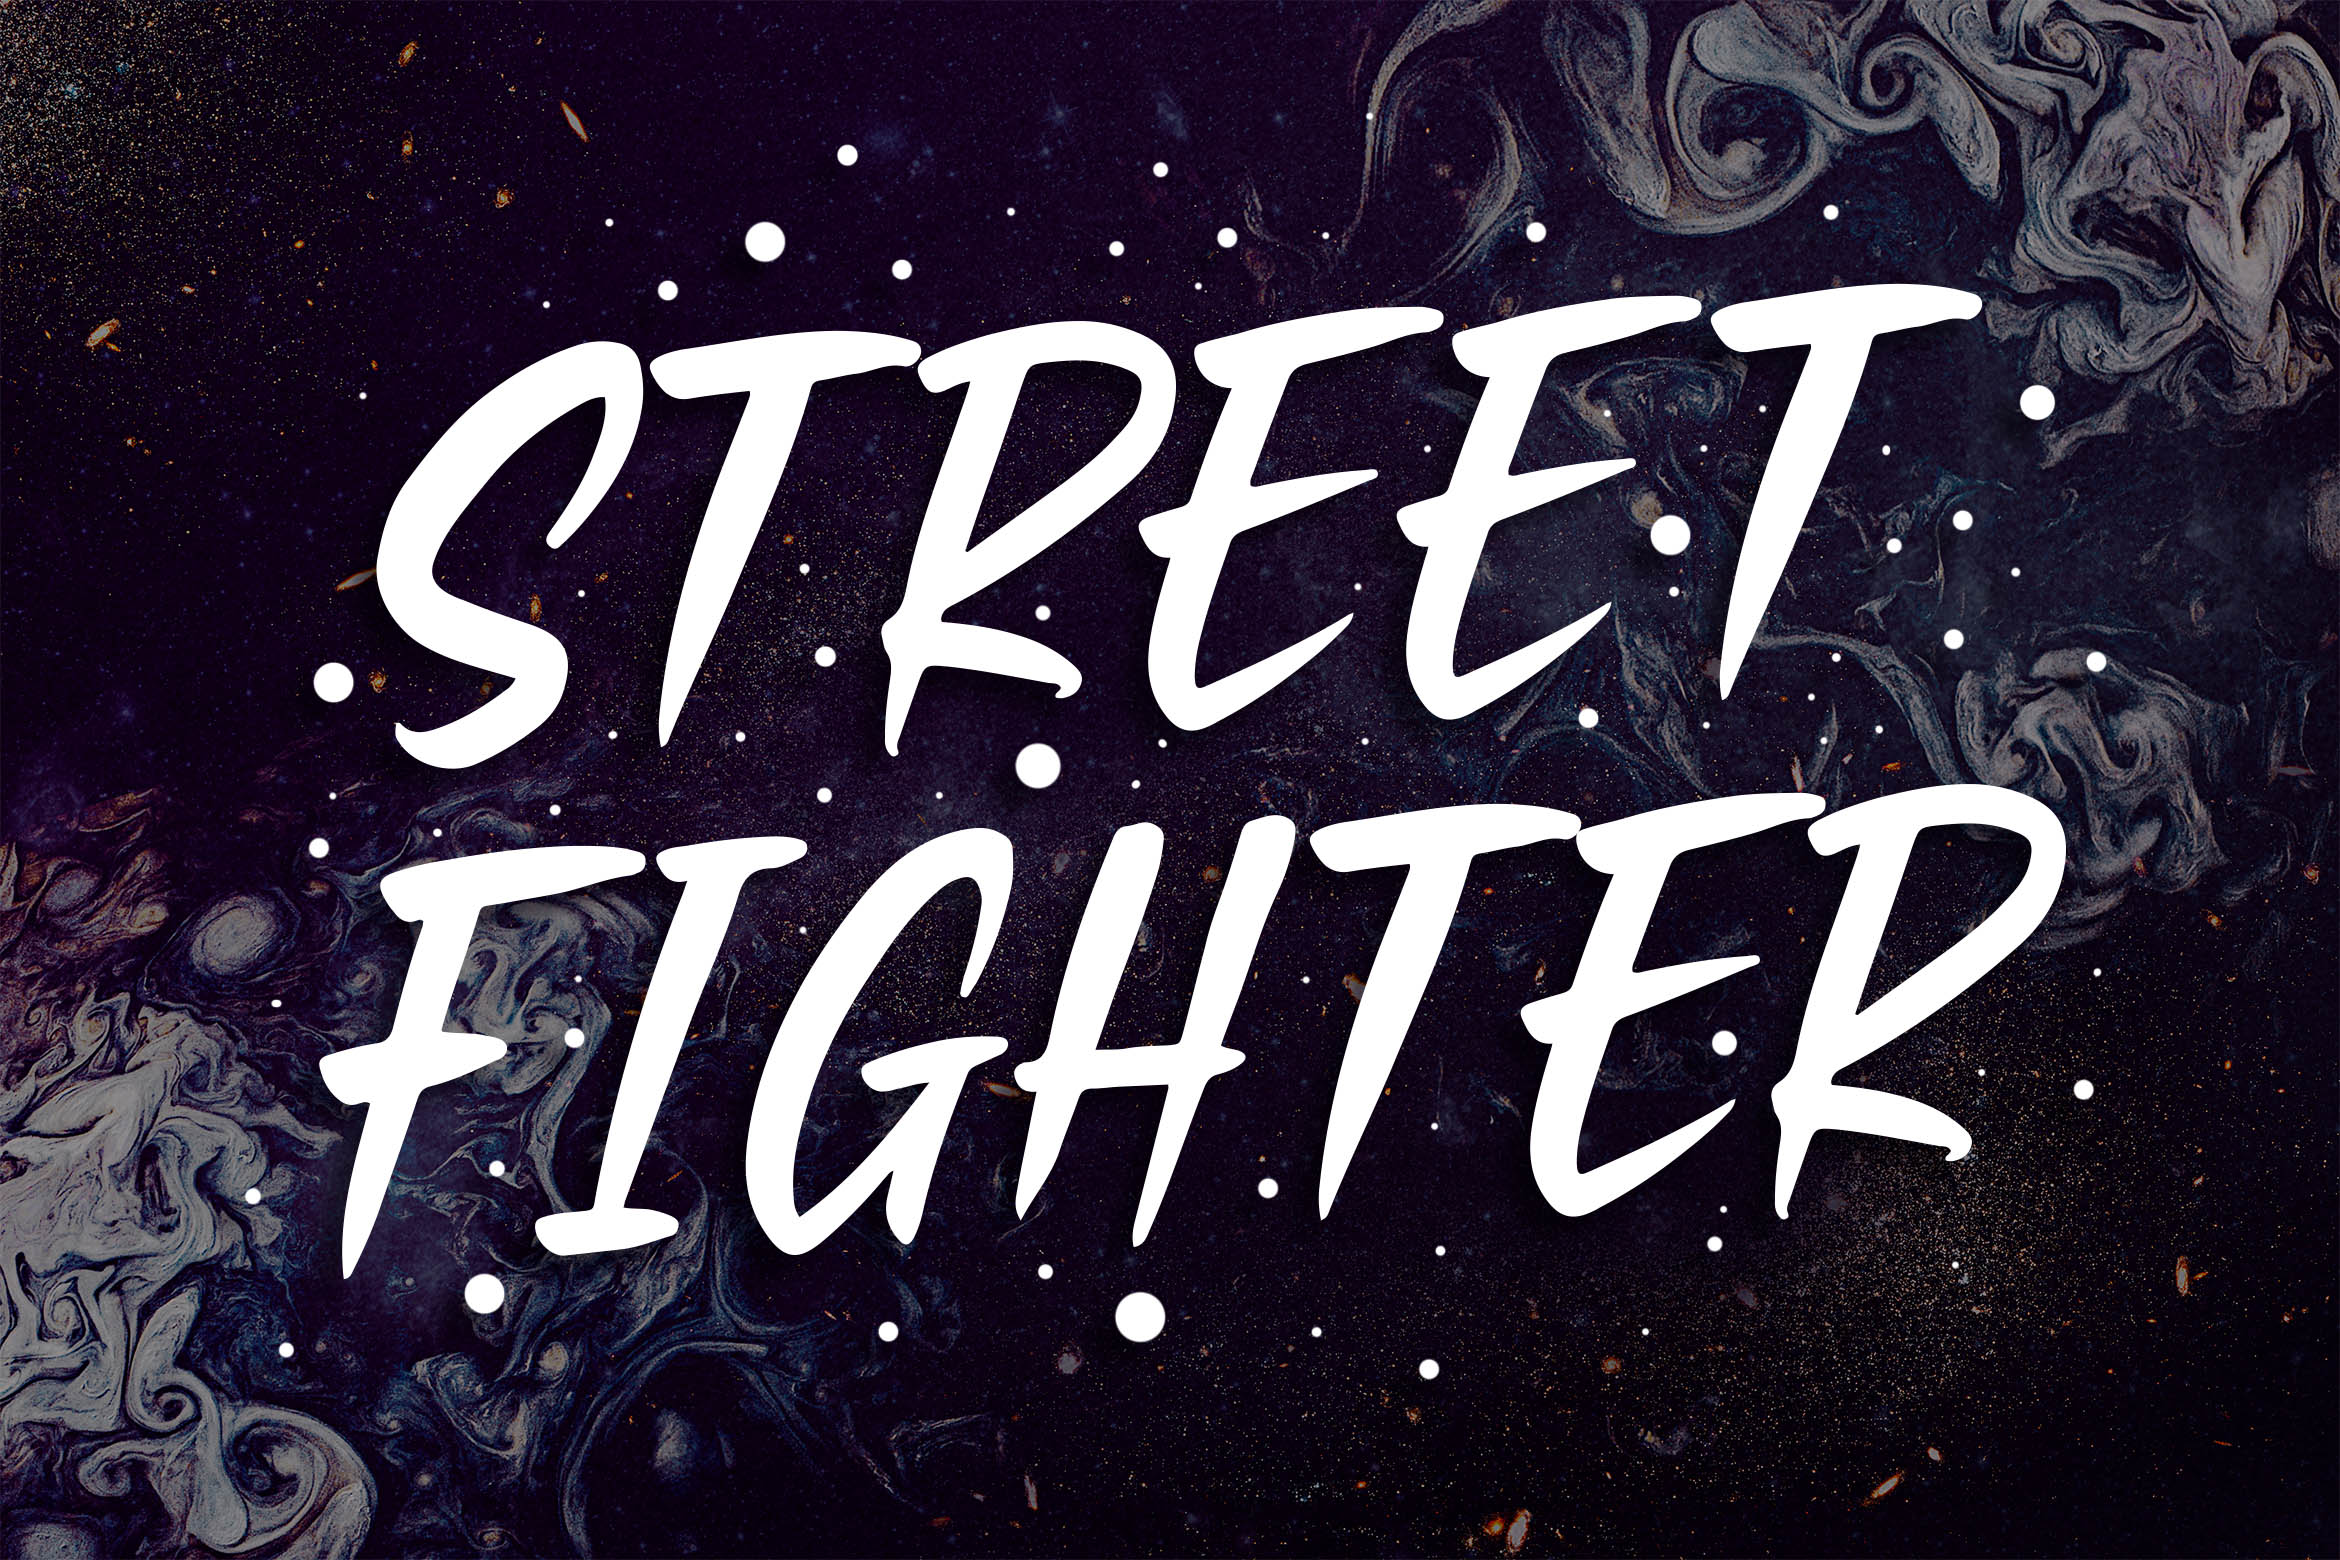 Black Fearnest - Strong Handwritten Font example image 4